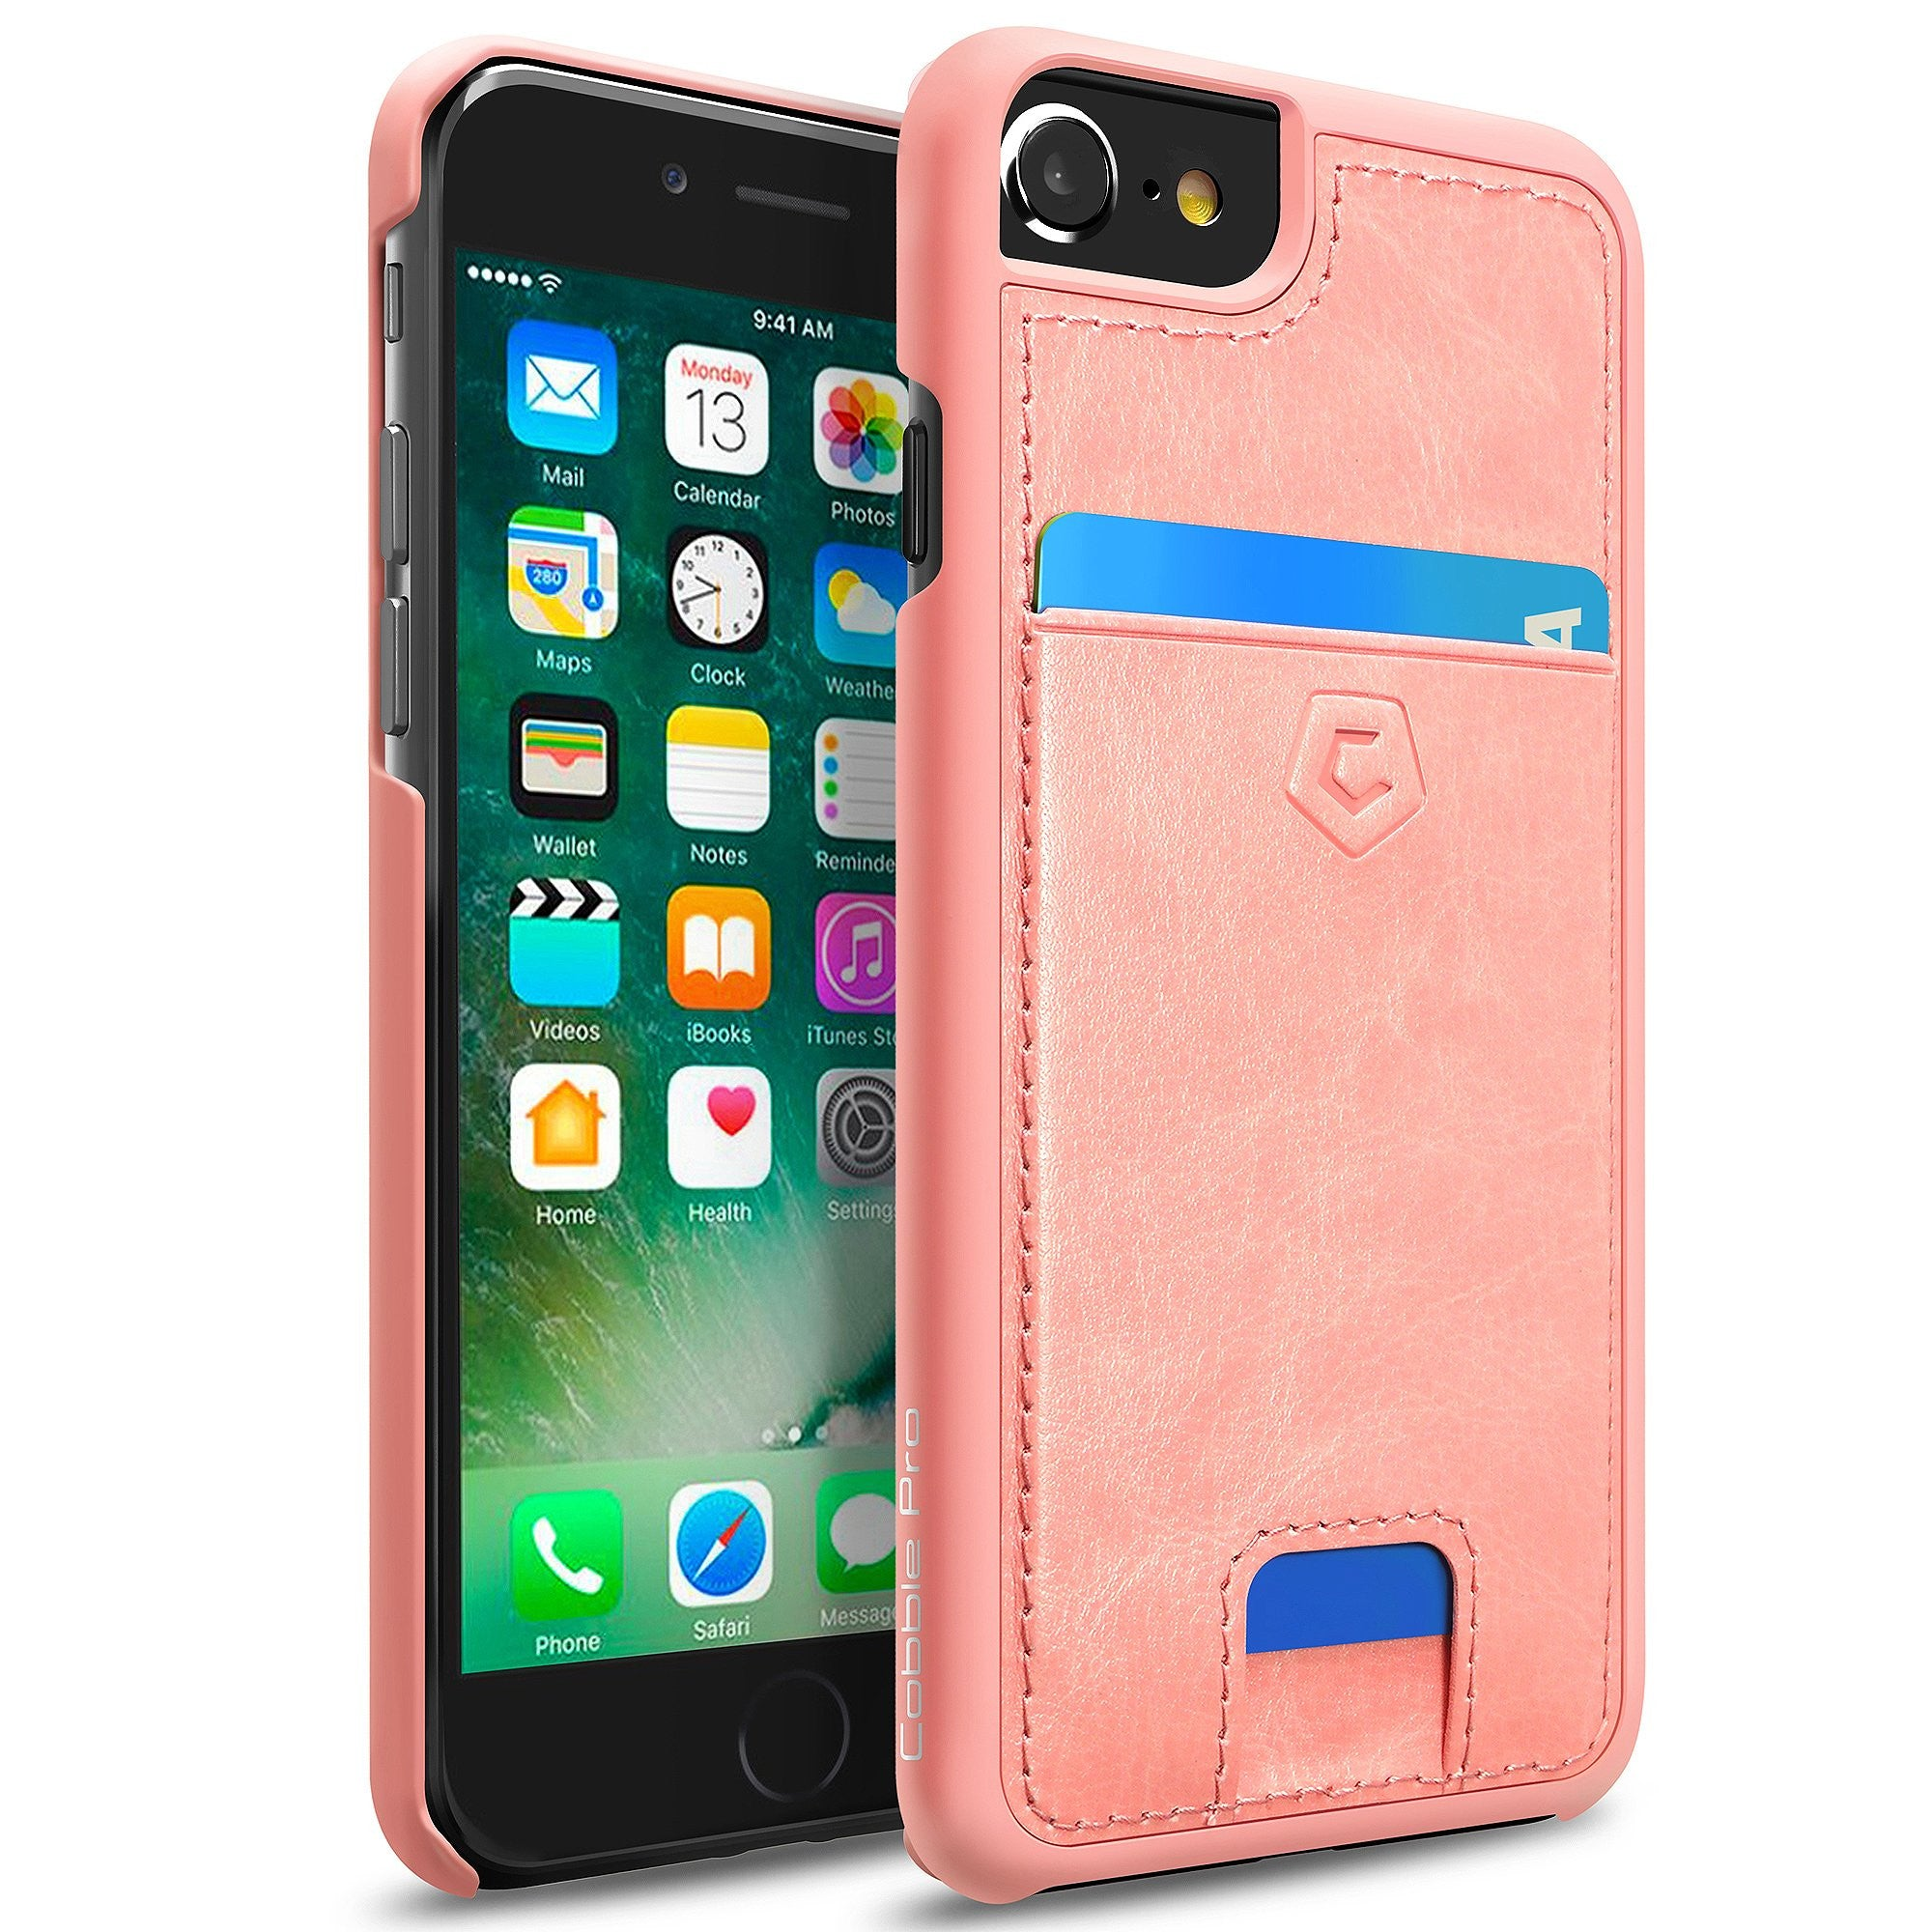 timeless design b962a 48061 Pink Premium Synthetic Leather Back Cover with Card Slot for iPhone 6 / 6s  / 7 / 8